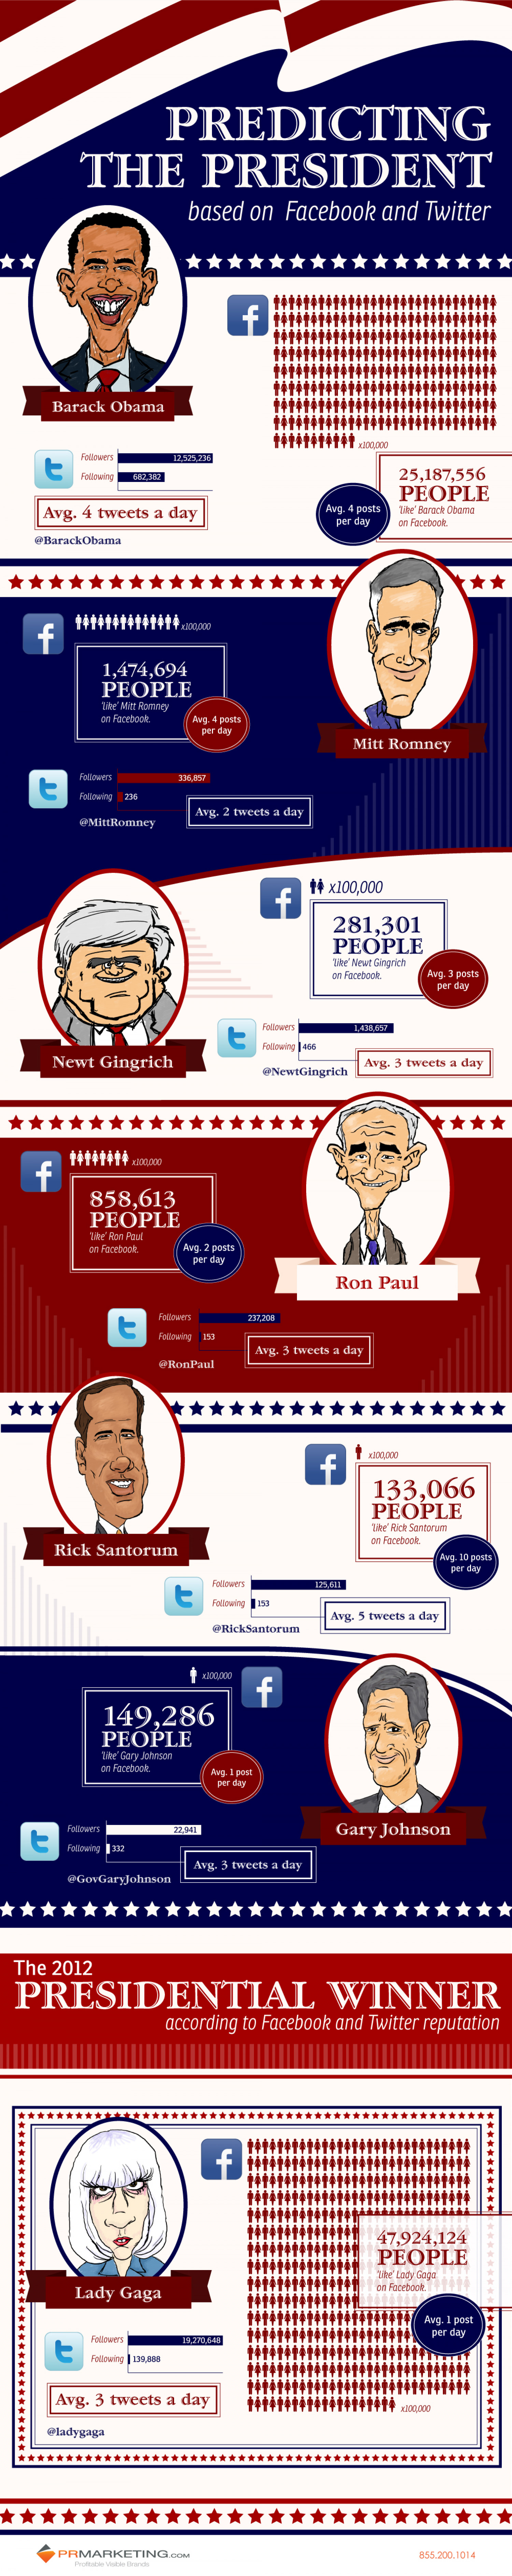 Predicting the President Infographic